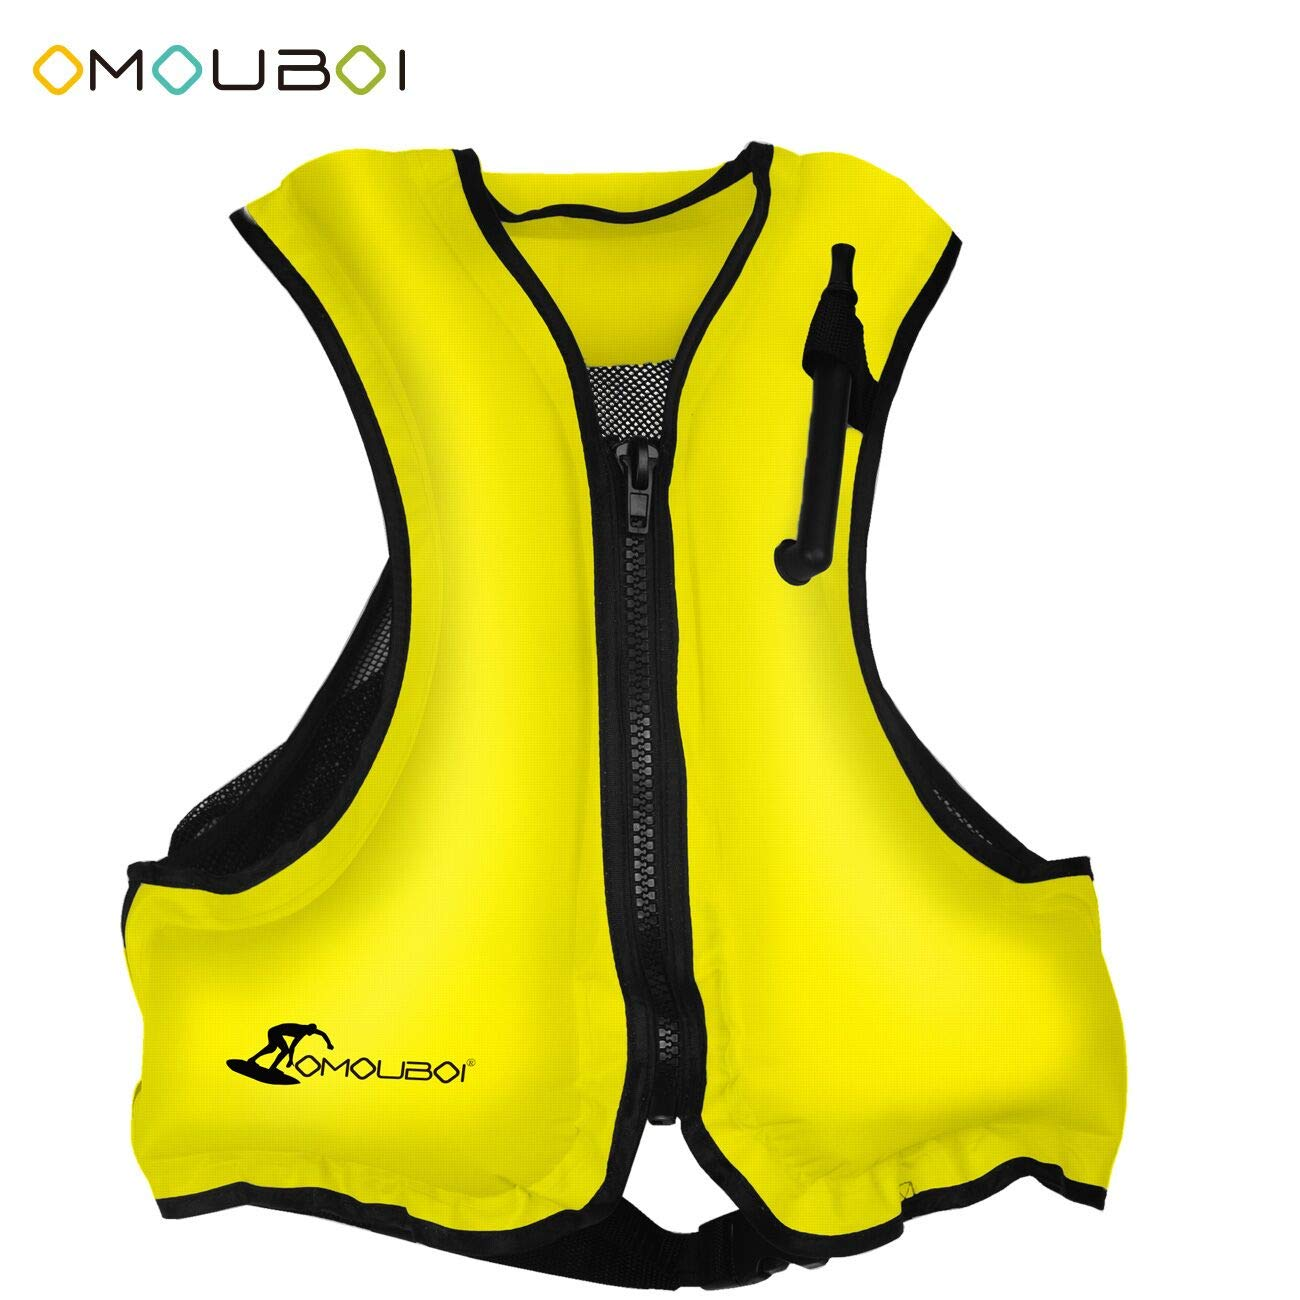 OMOUBOI Inflatable Life Jacket Adult Snorkel Vest Life Vest for Swimming&Diving Suitable for 80-220 lbs(Yellow)